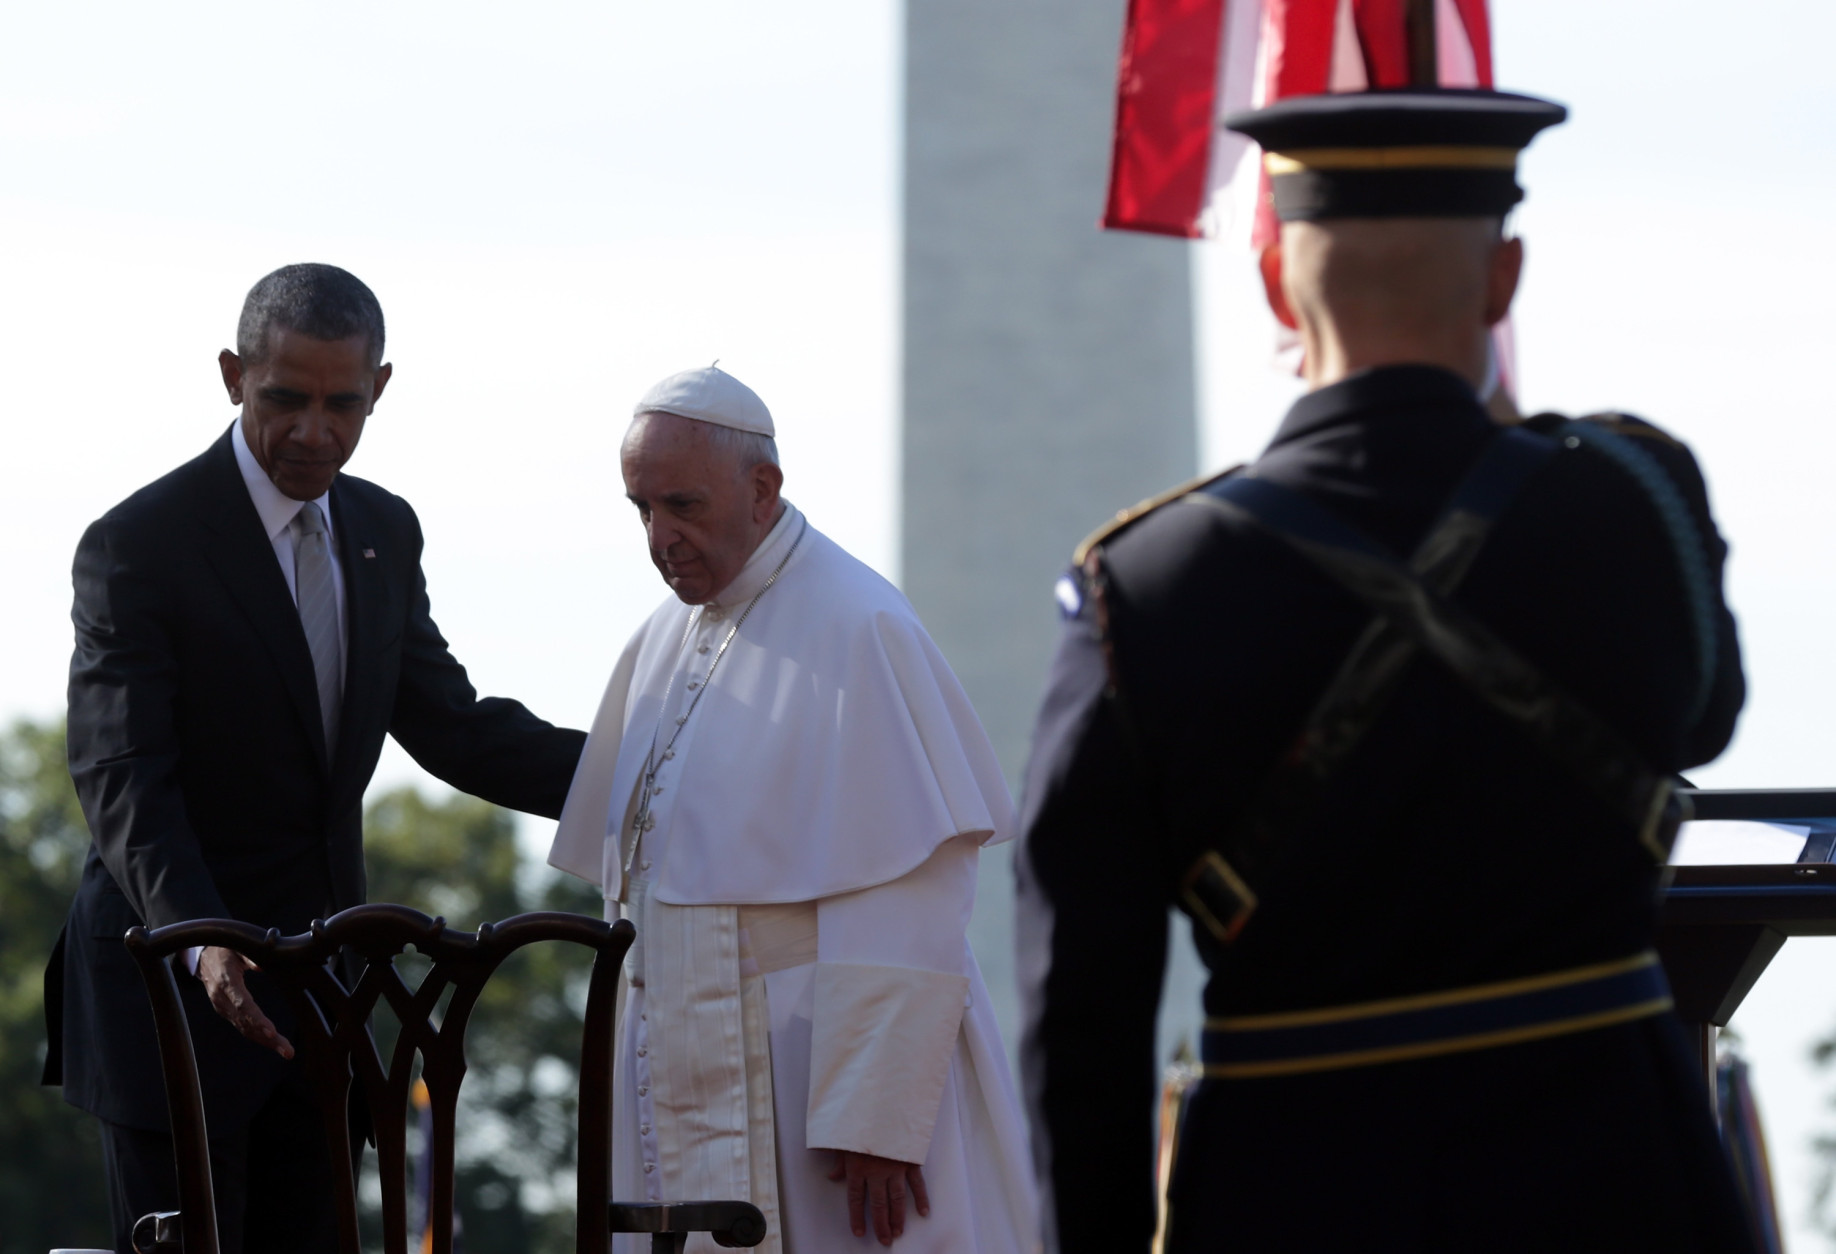 WASHINGTON, DC - SEPTEMBER 23:  U.S. President Barack Obama (L) guides Pope Francis (C) to his chair during his arrival ceremony at the White House on September 23, 2015 in Washington, DC. The Pope begins his first trip to the United States at the White House followed by a visit to St. Matthew's Cathedral, and will then hold a Mass on the grounds of the Basilica of the National Shrine of the Immaculate Conception.  (Photo by Alex Wong/Getty Images)